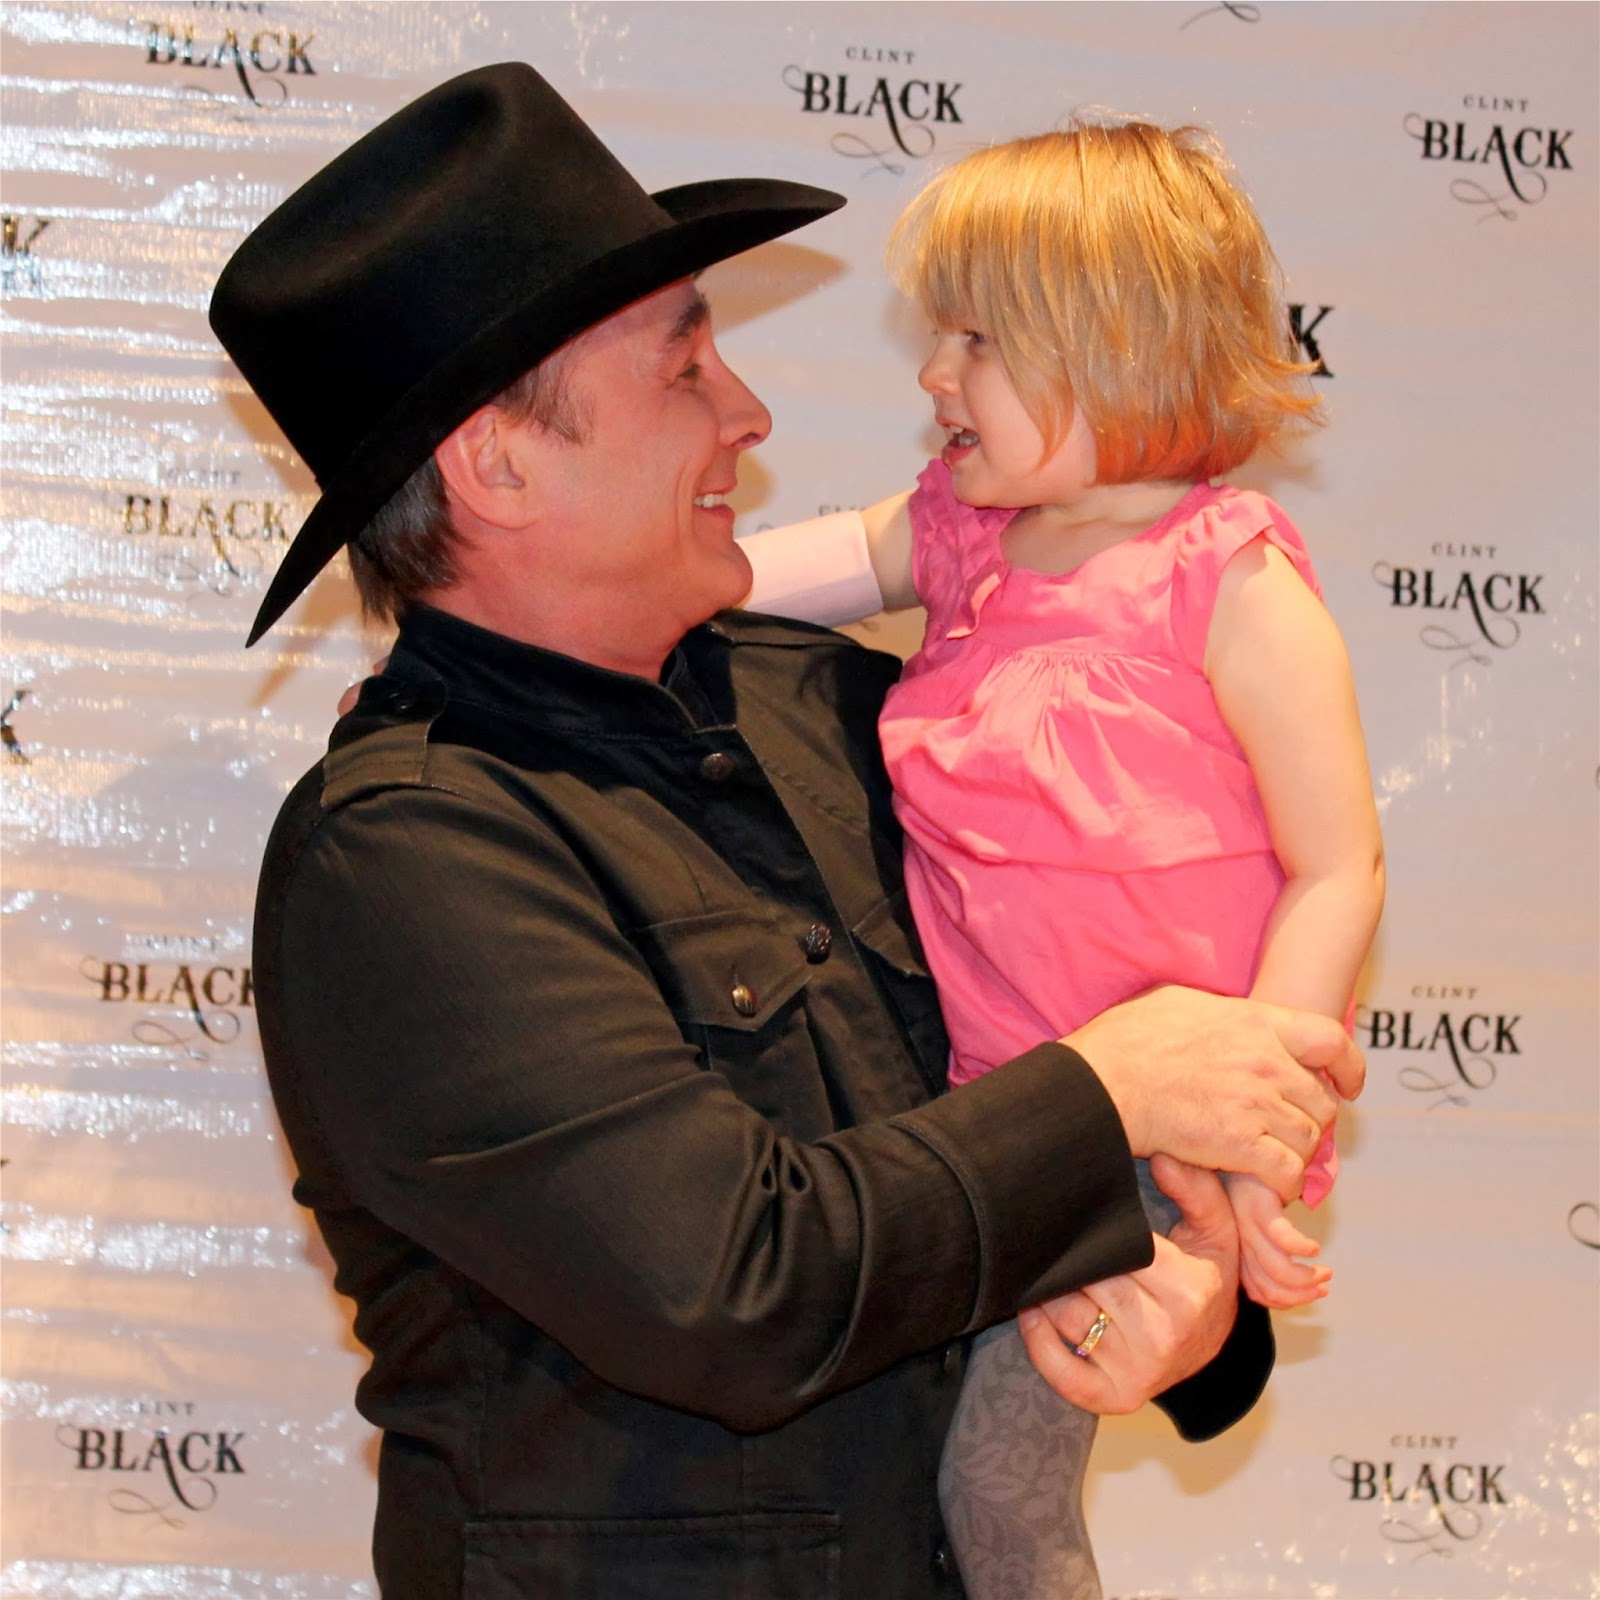 clint black dating site Clint black tour dates, concert tickets 2018 clinton patrick clint black is an american country music singer-songwriter, record.